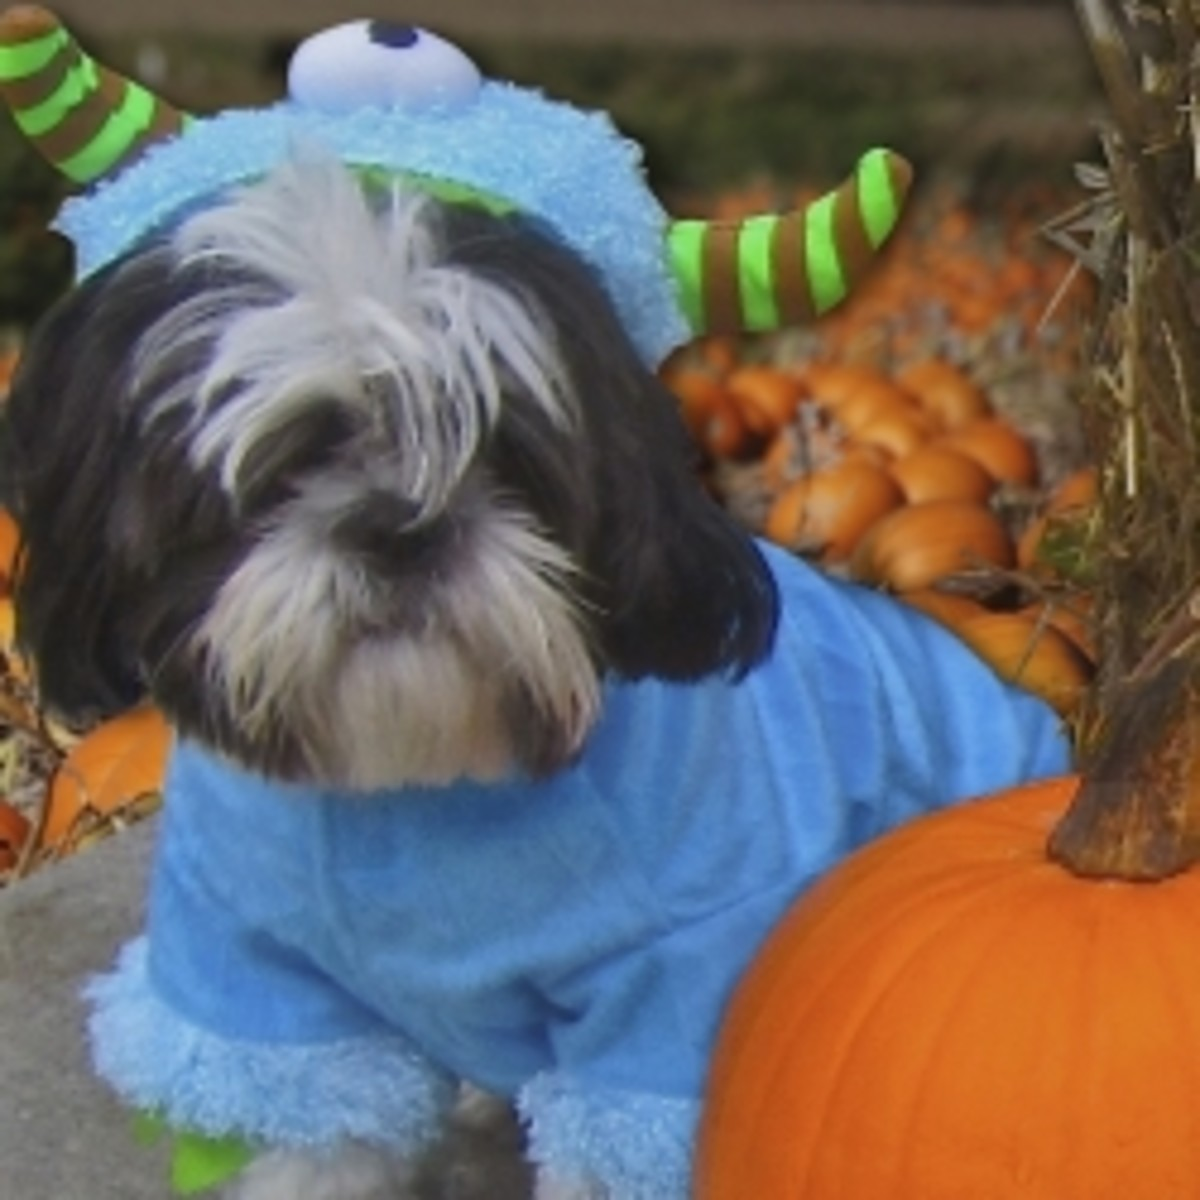 Our dog in a borrowed Monster Costume provided a great photo op. © 2012 CJS. All Rights Reserved.